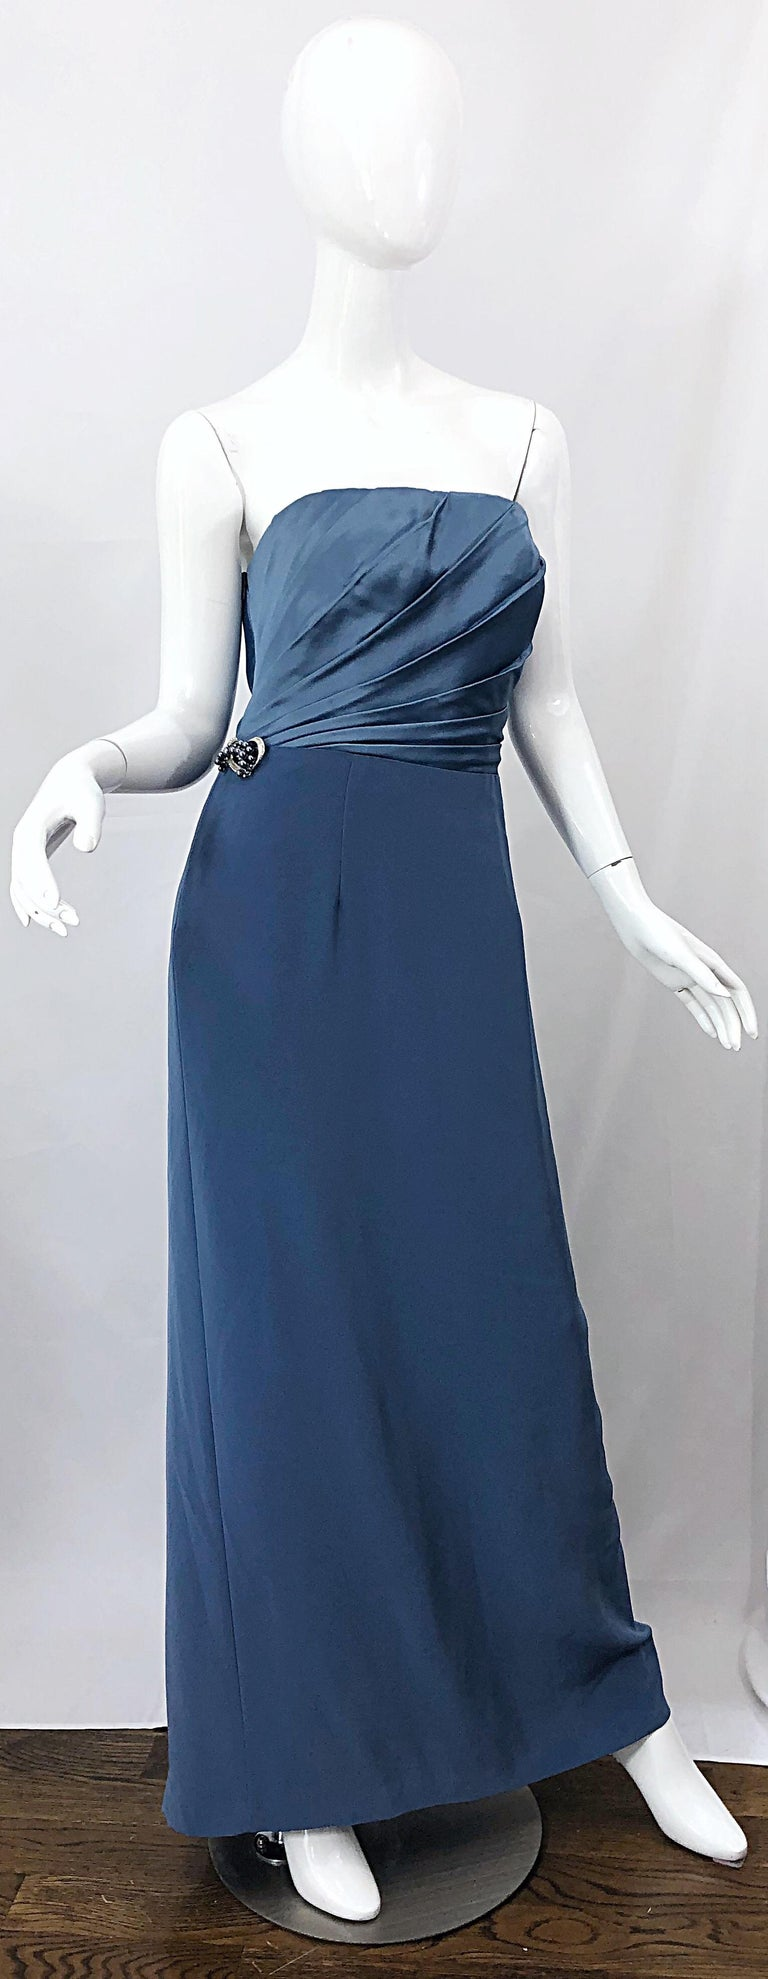 Vintage Bob Mackie Size 12 80s Blue Silk Strapless 1980s Evening Gown Dress For Sale 10